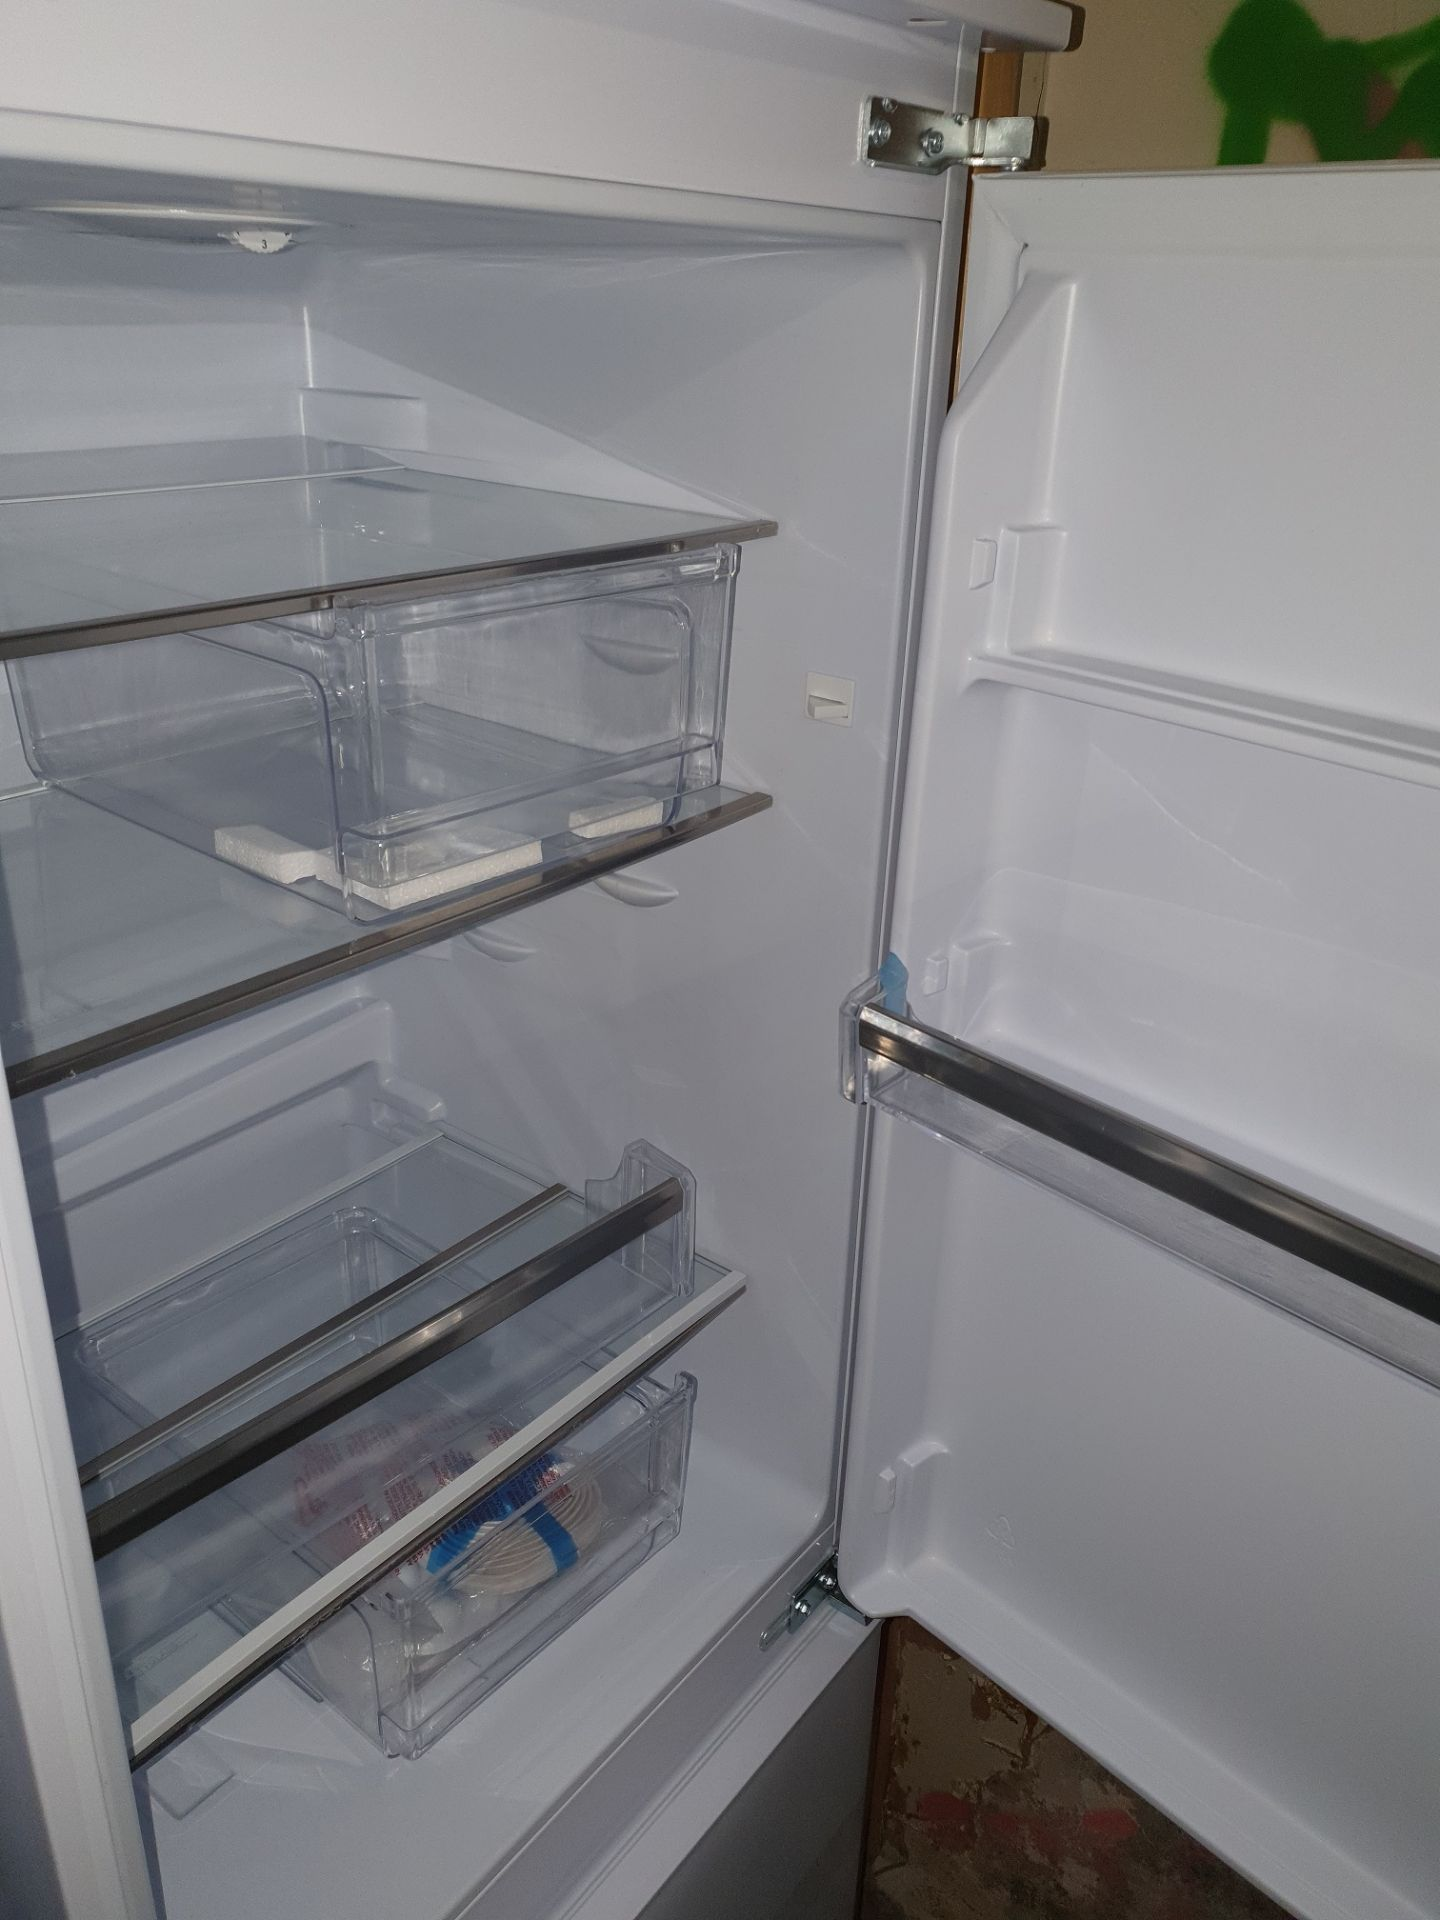 NEW/GRADED AND UNPACKAGED Electrolux ENN2853COV Built-in 70/30 Frost Free Fridge Freezer (Brand - Image 13 of 14